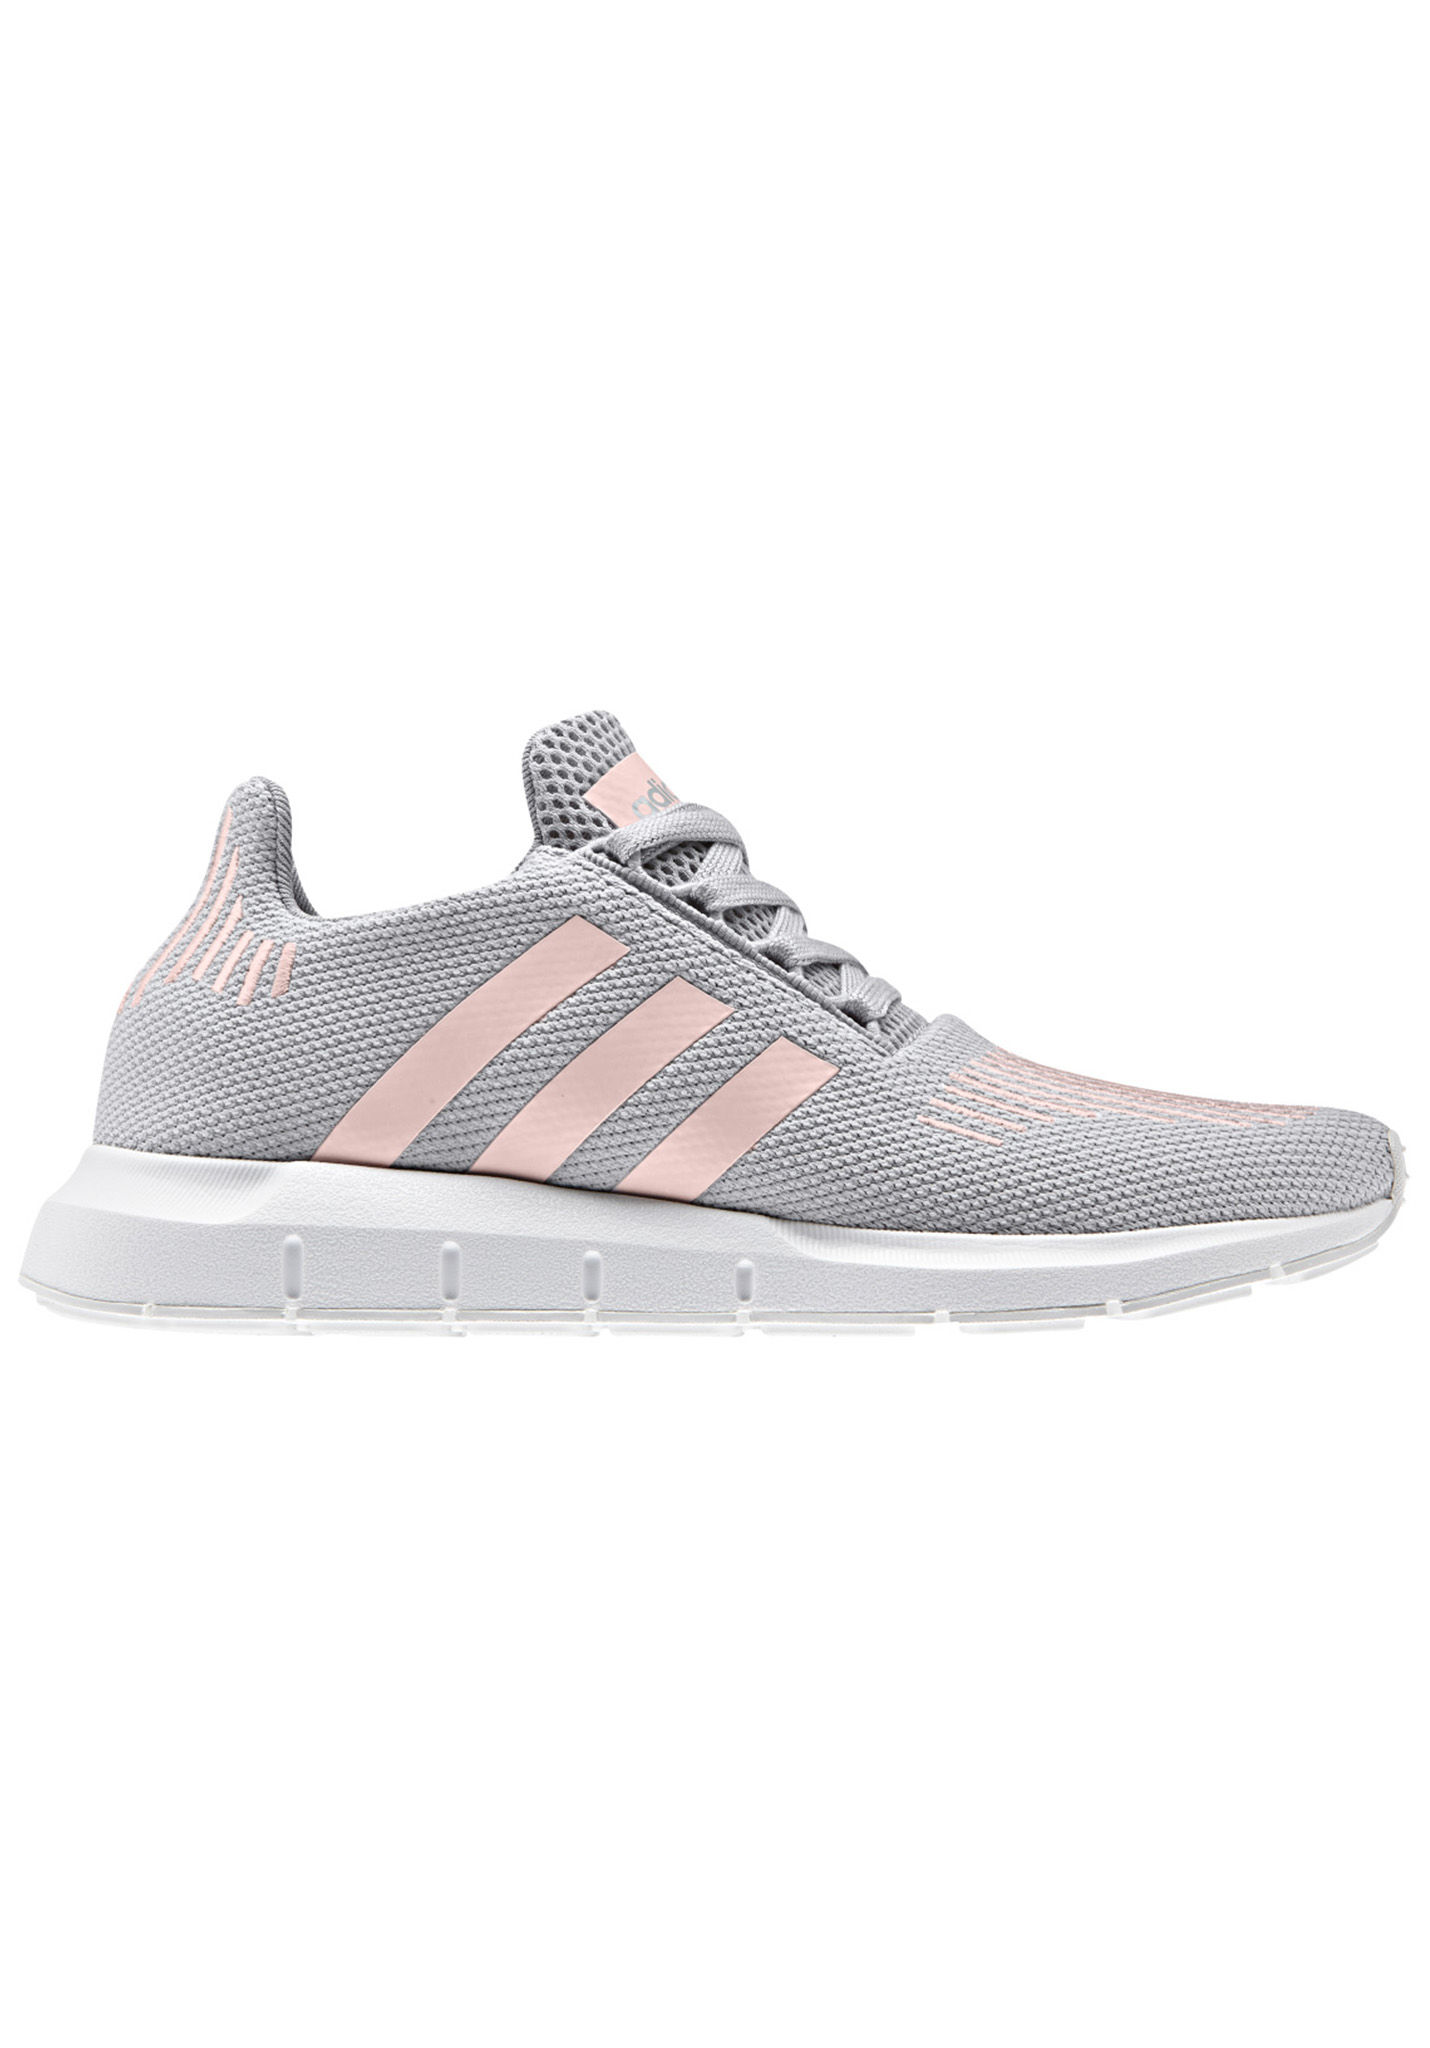 101300c8c11bf ADIDAS ORIGINALS Swift Run - Sneakers for Women - Grey - Planet Sports